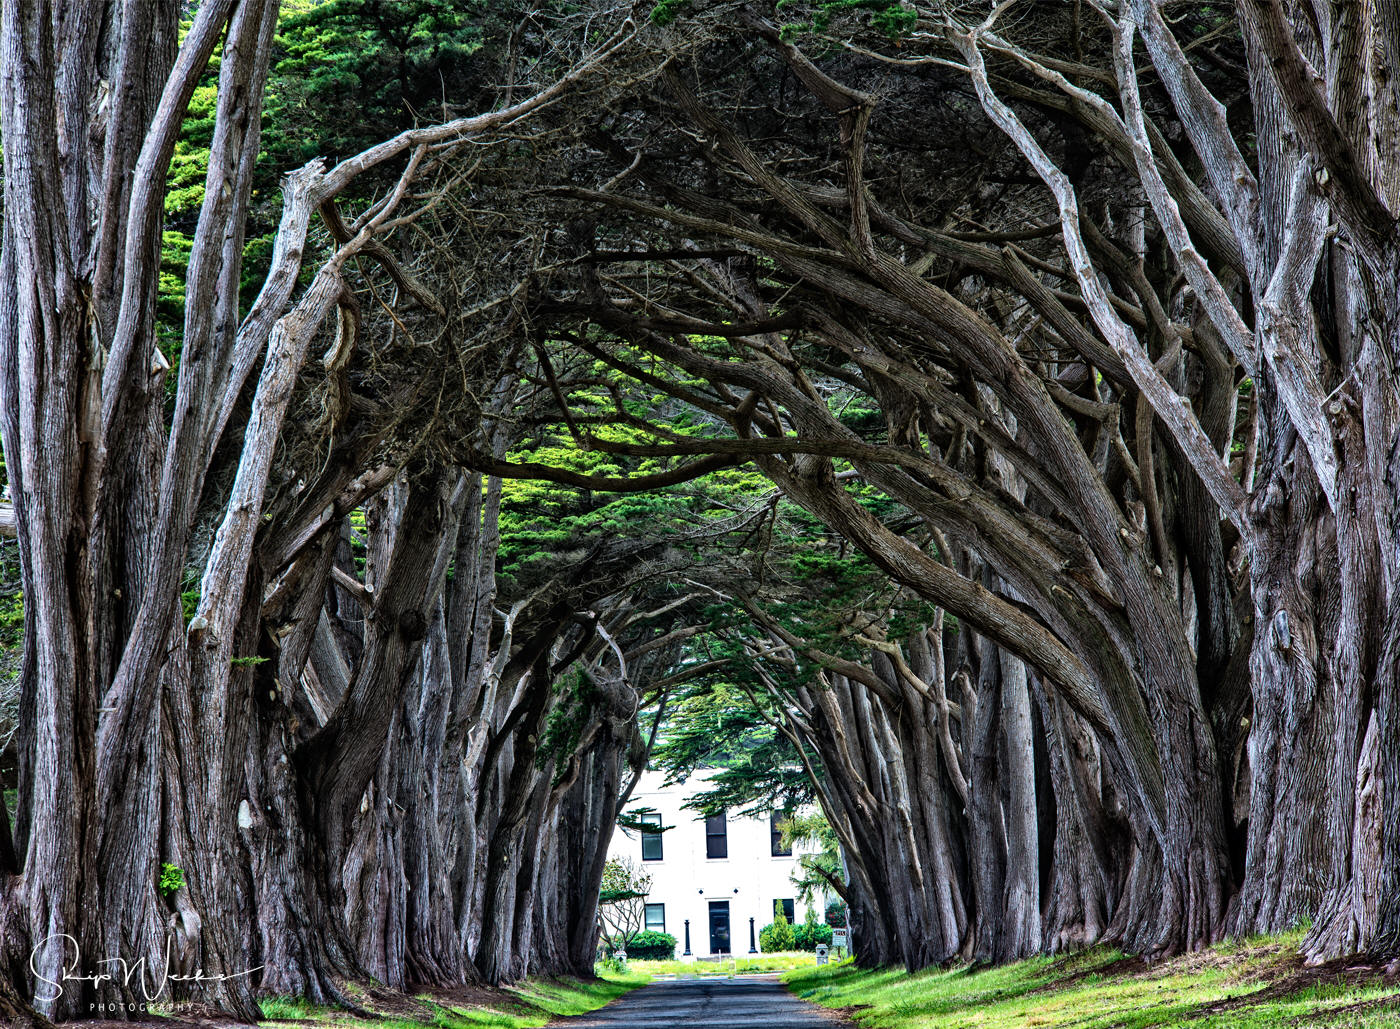 Cyprus Tree Tunnel in Marin County by Skip Weeks